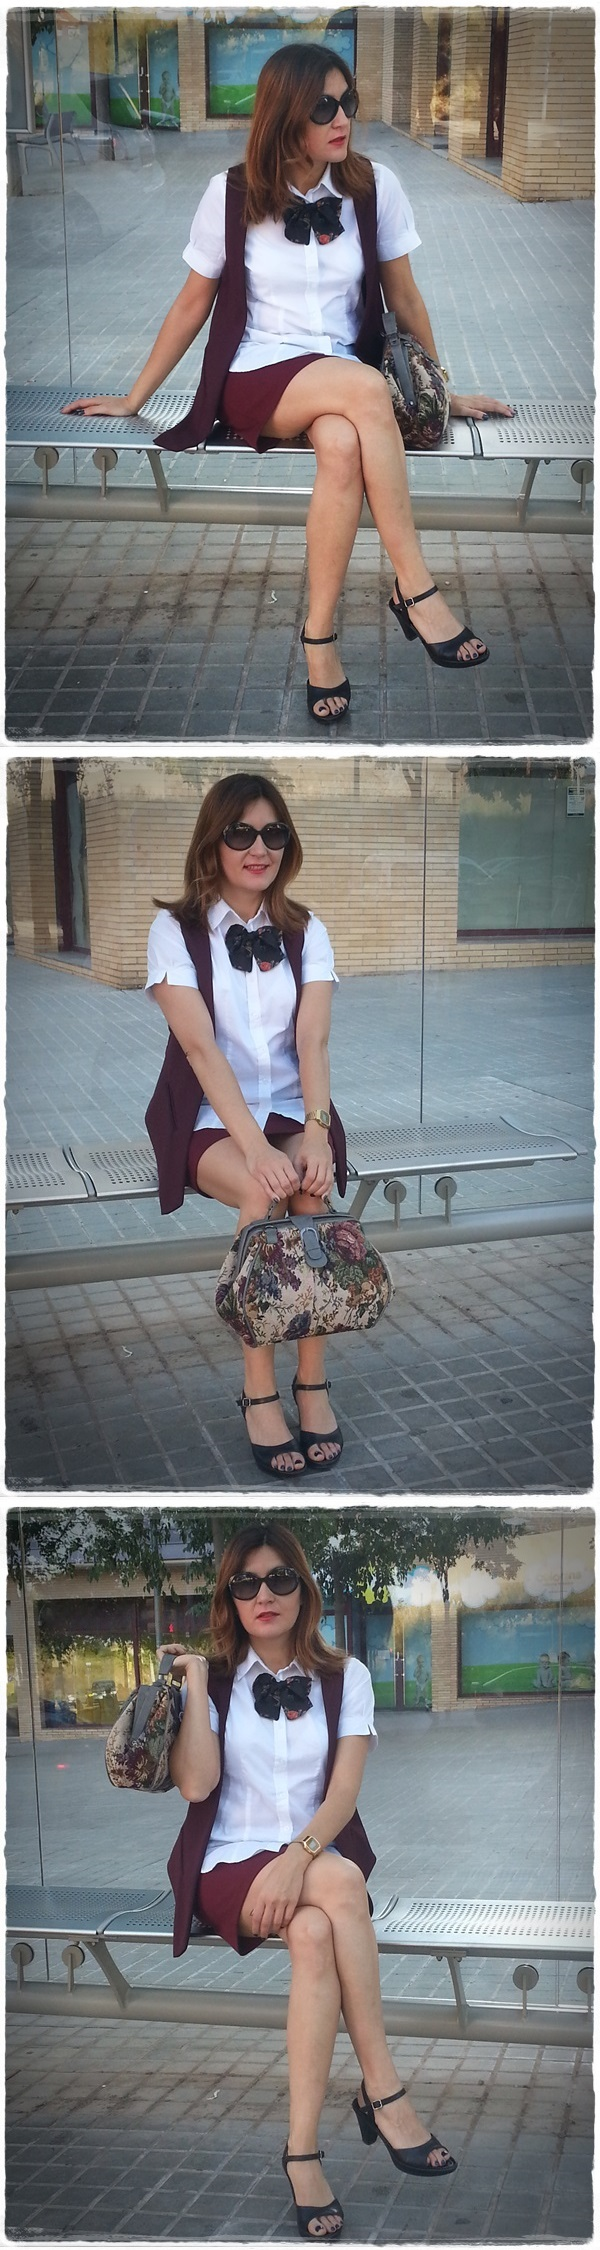 Waiting for the bus - Street style, On the bus stop - Street Style - Falda Silvian Heich , Bolso Misako, chaleco Polca, camisa Amichi